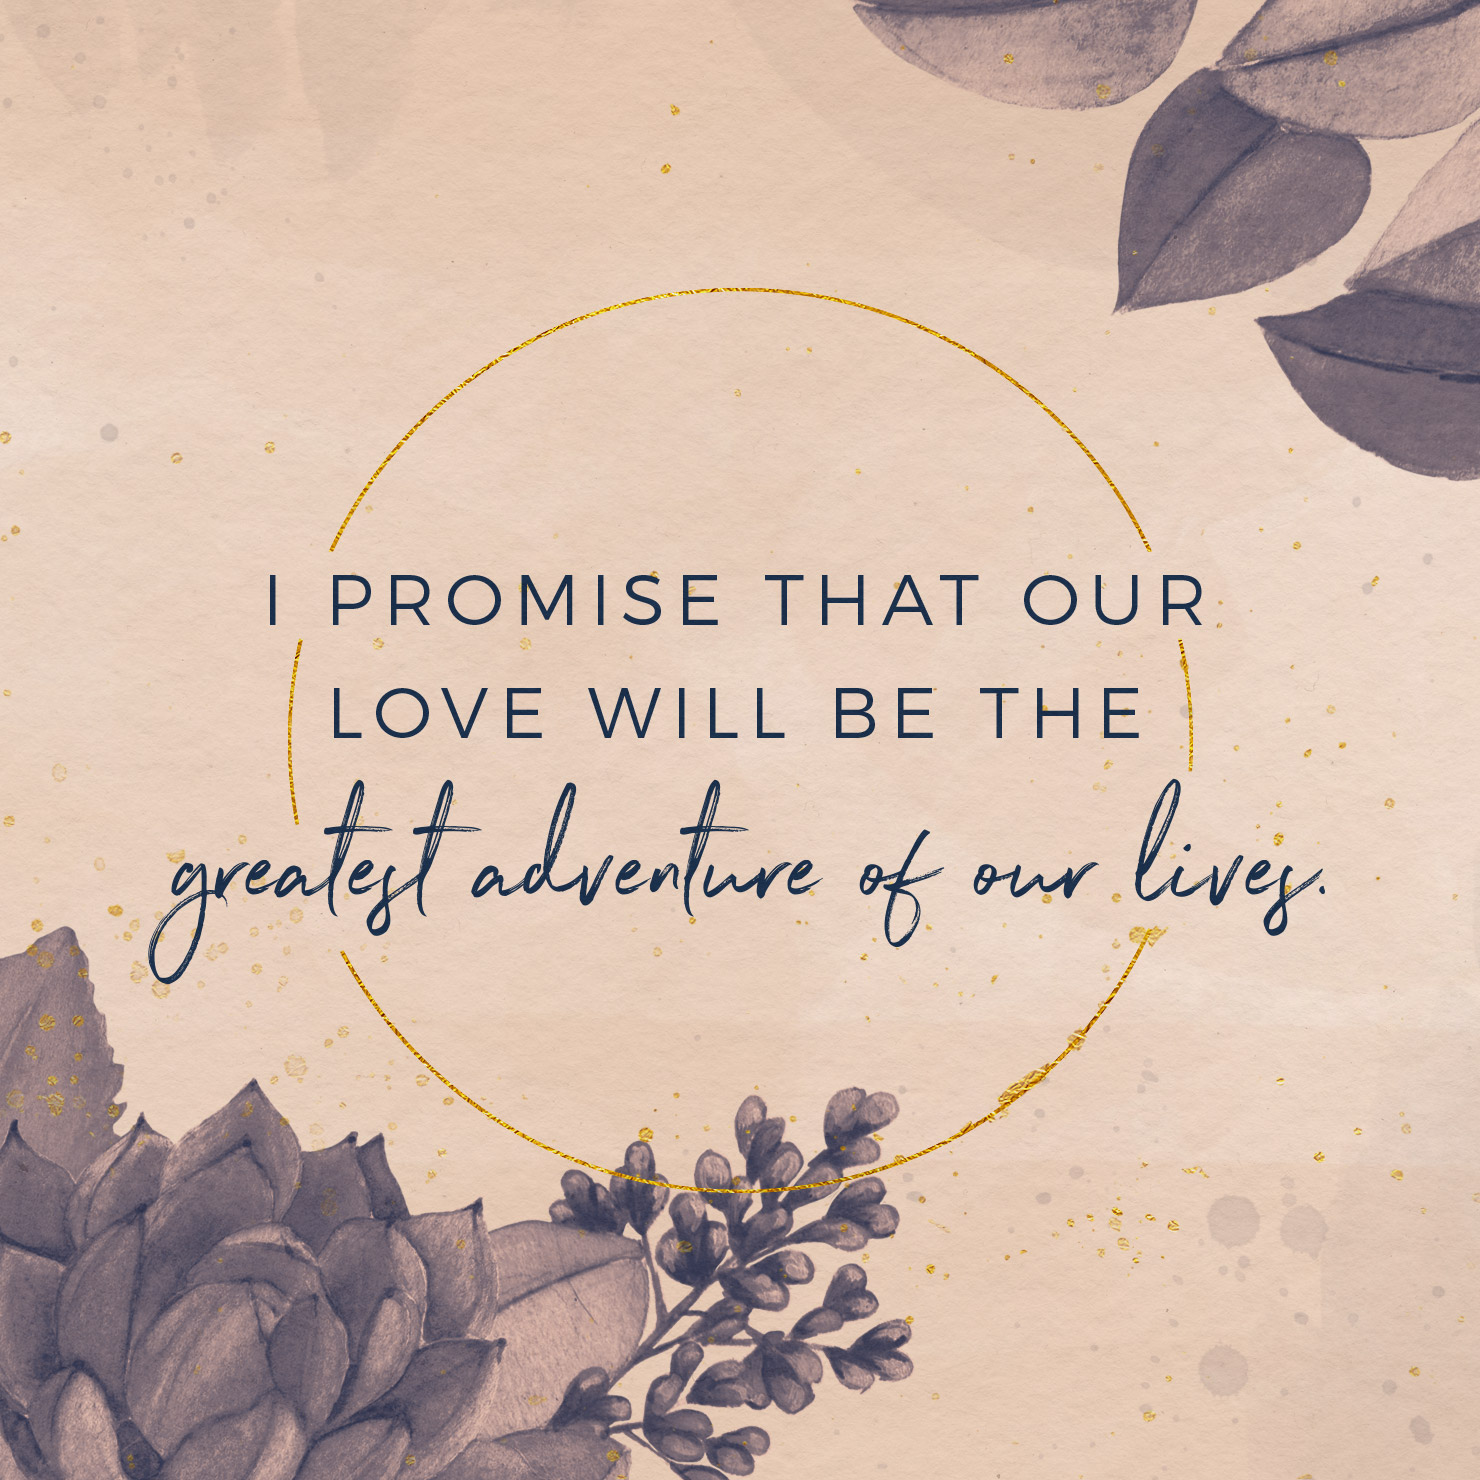 I promise that our love will be the greatest adventure of our lives.